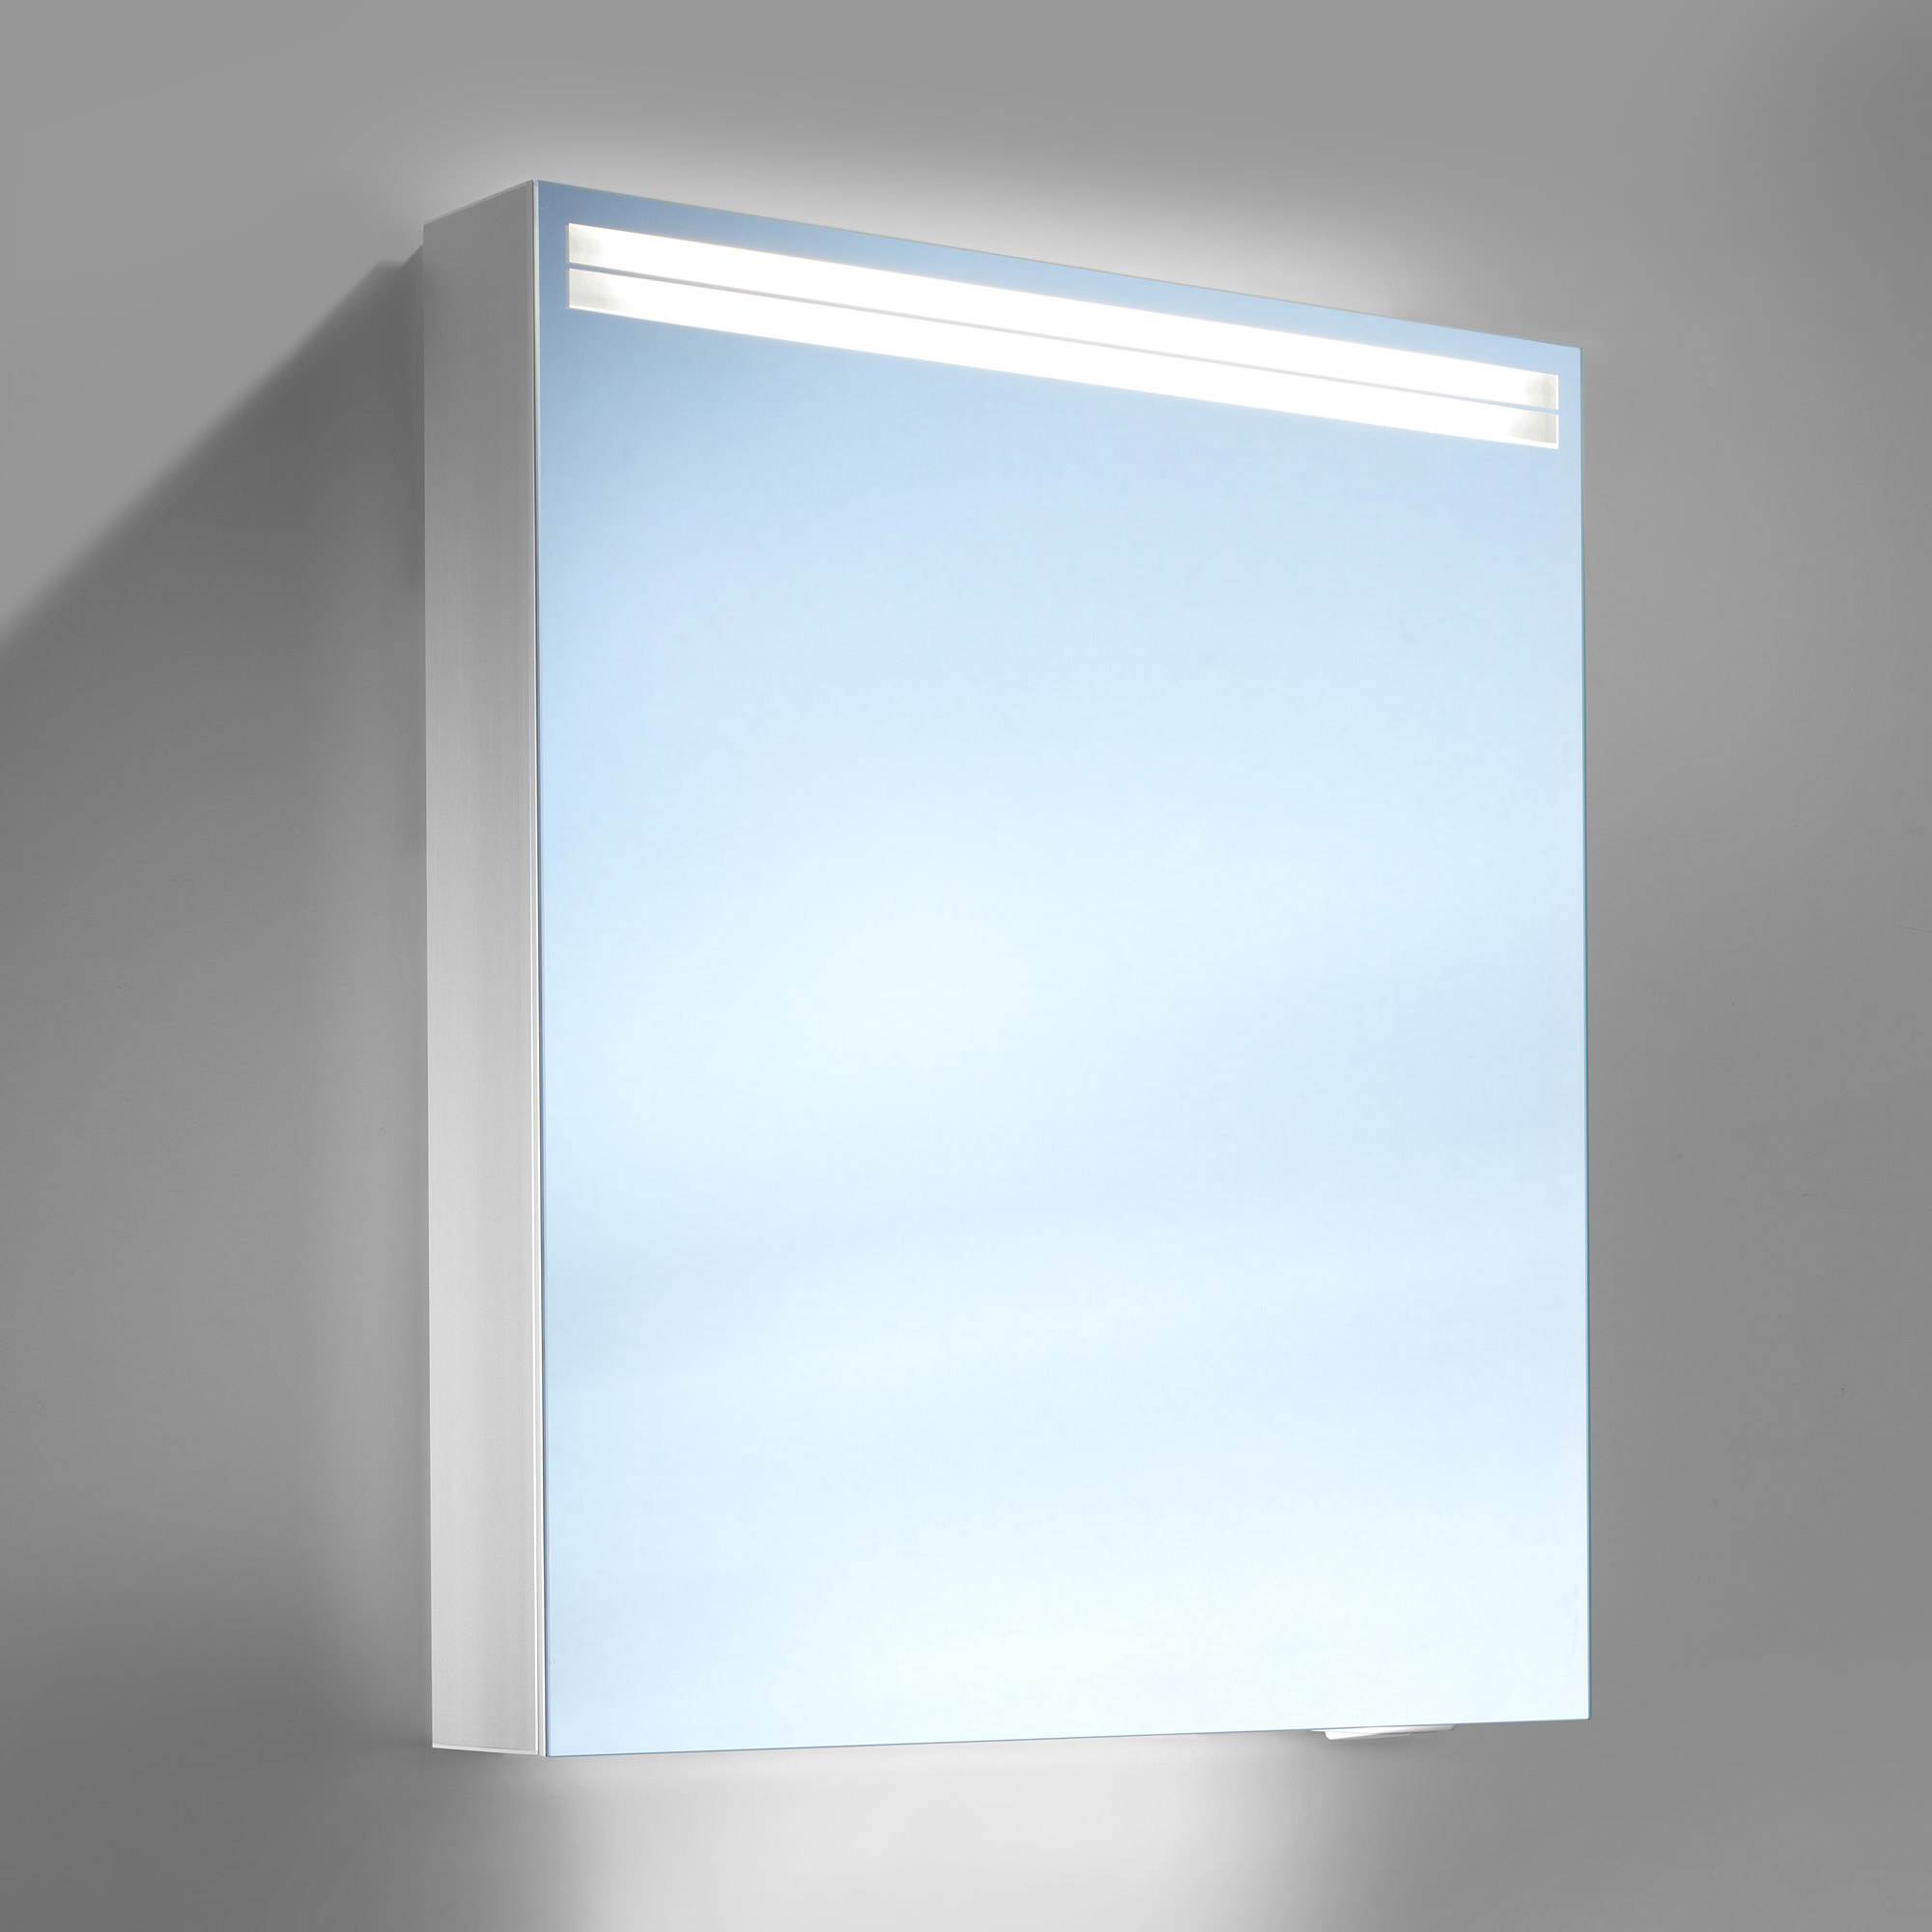 Schneider arangaline 500mm 1 door mirror cabinet with led for 1 door cabinet